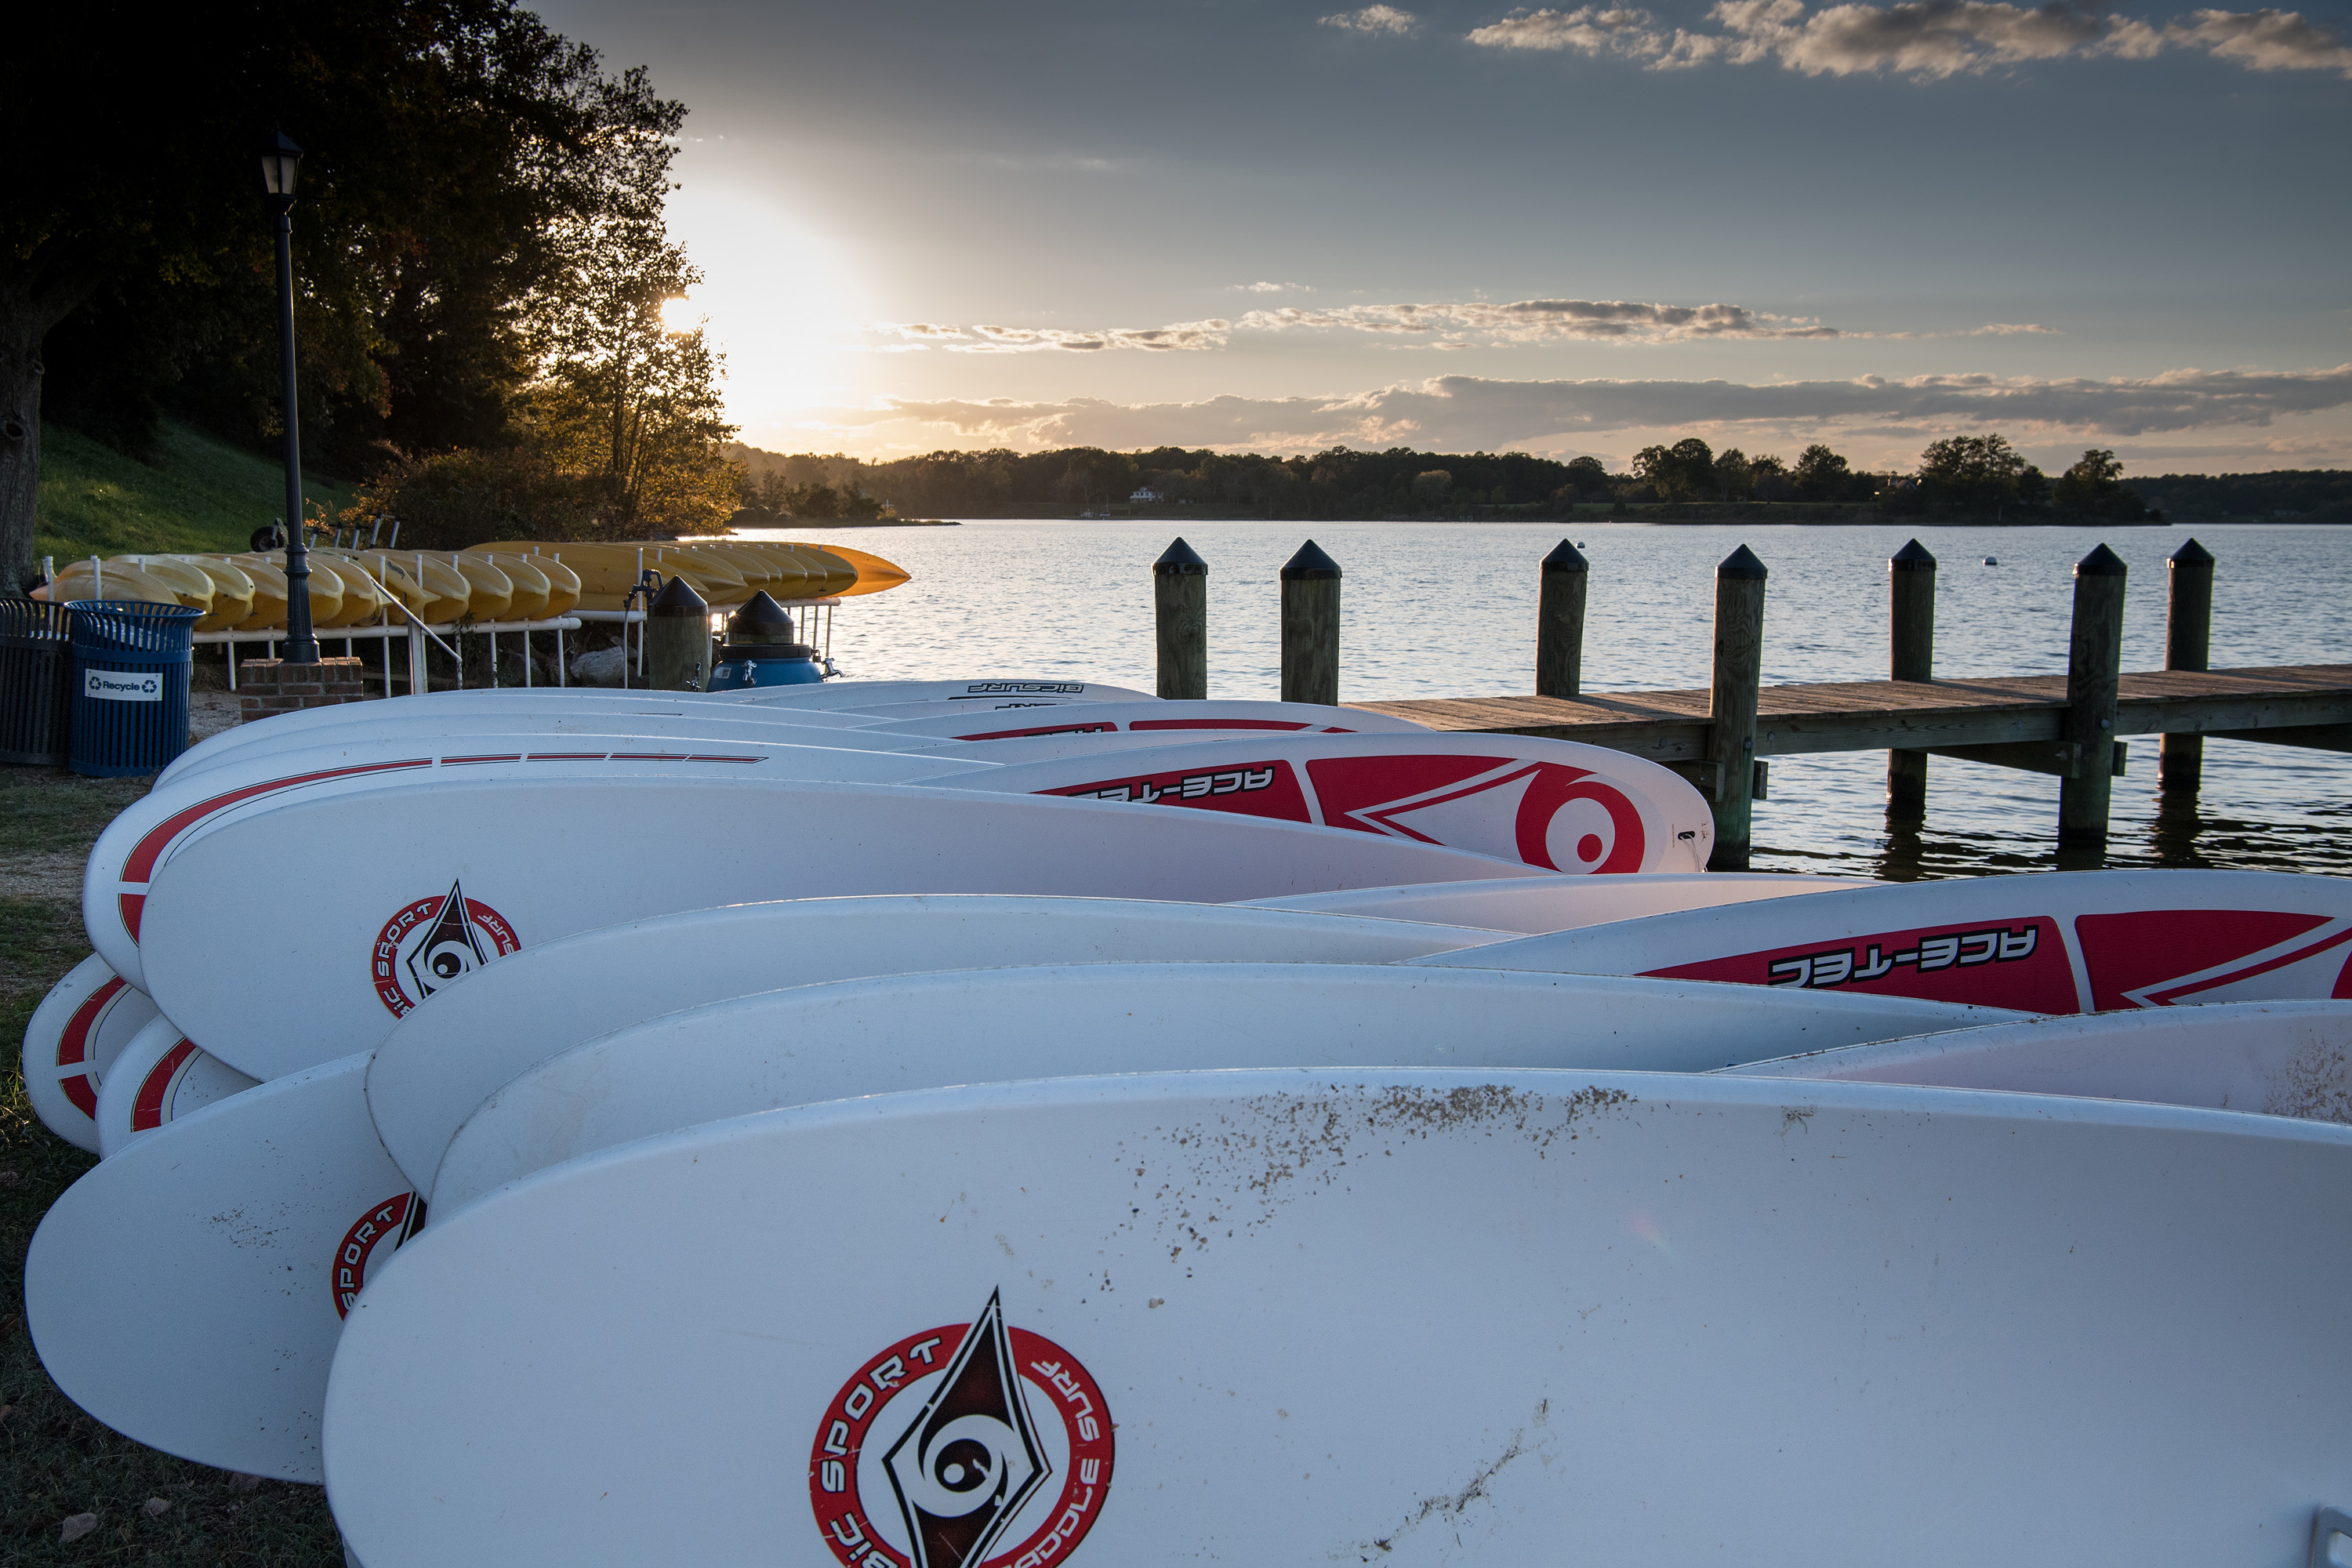 A row of white and red paddleboards and yellow kayaks are stored by a dock on the river